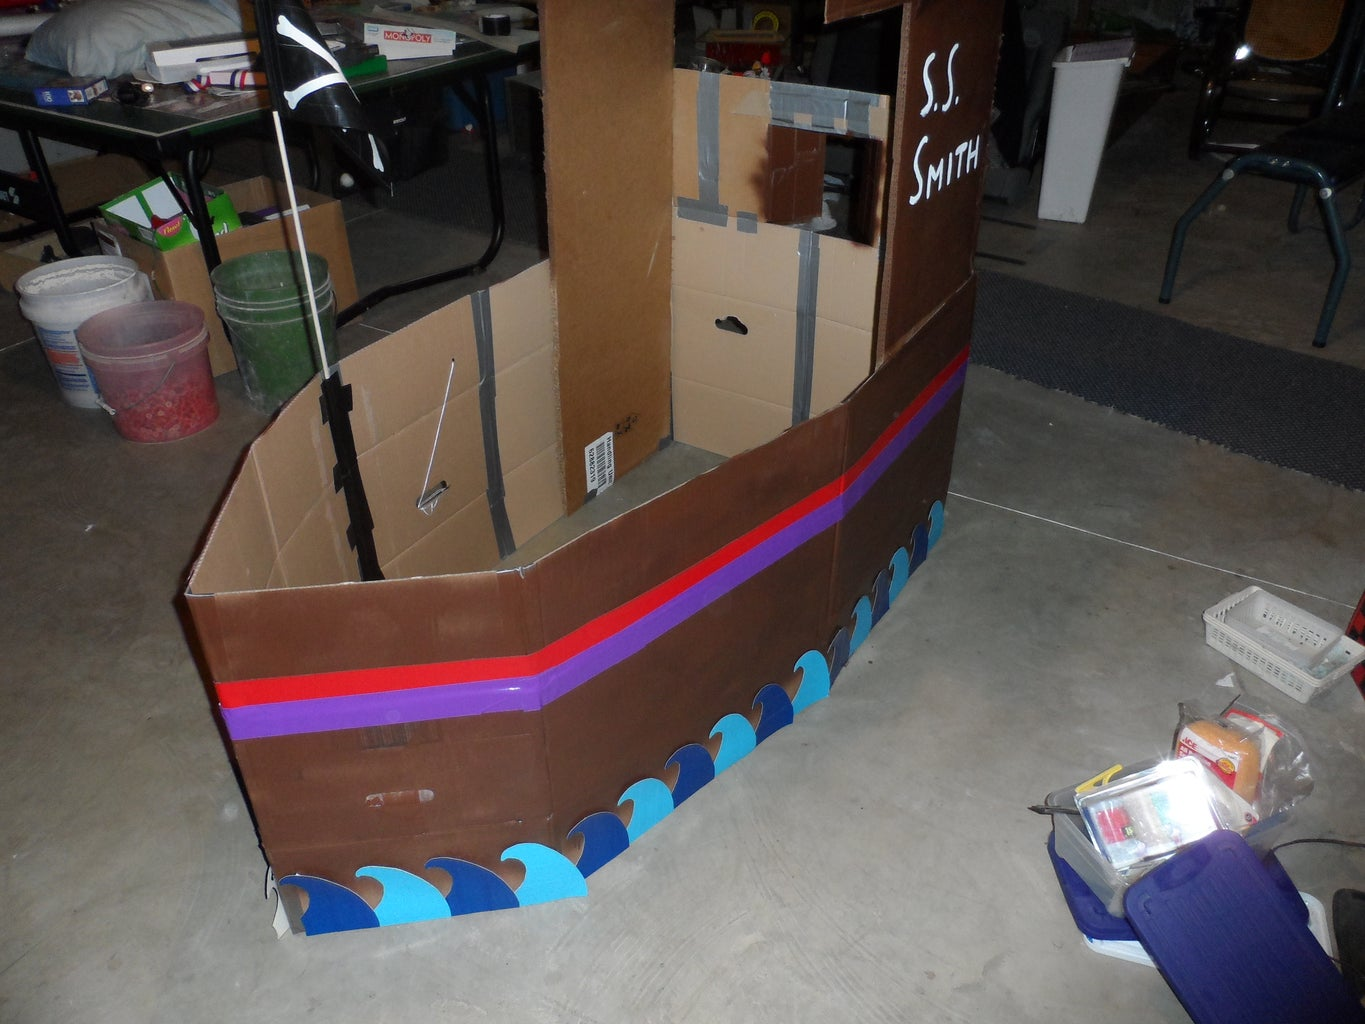 Duct Tape and Cardboard Boat!